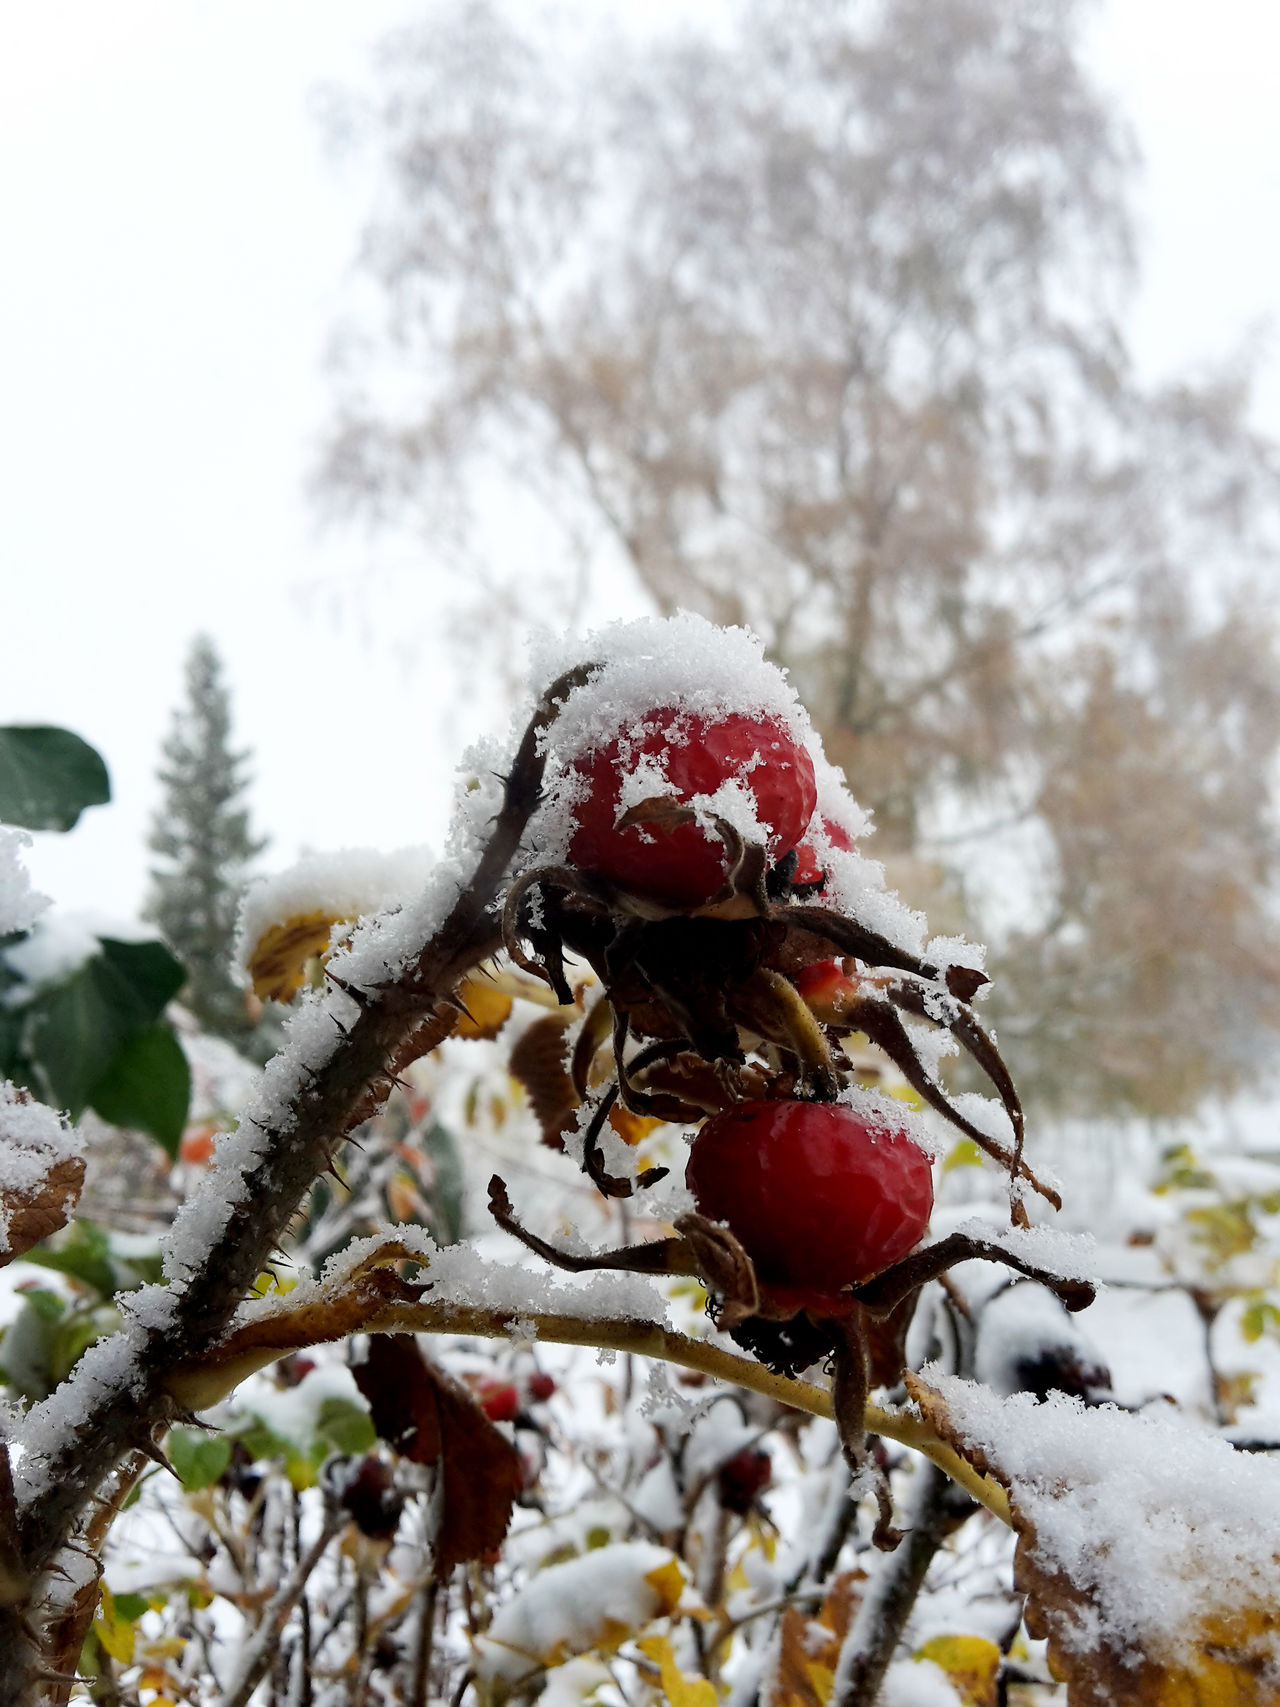 Rose hips slightly covered by snow Beauty In Nature Branch Close Up Close-up Cold Days Cold Temperature Day Flower Flower Head Fragility Frozen Growth Nature Outdoors Red Rose Hip Rose Hips Snow Tree Weather Winter